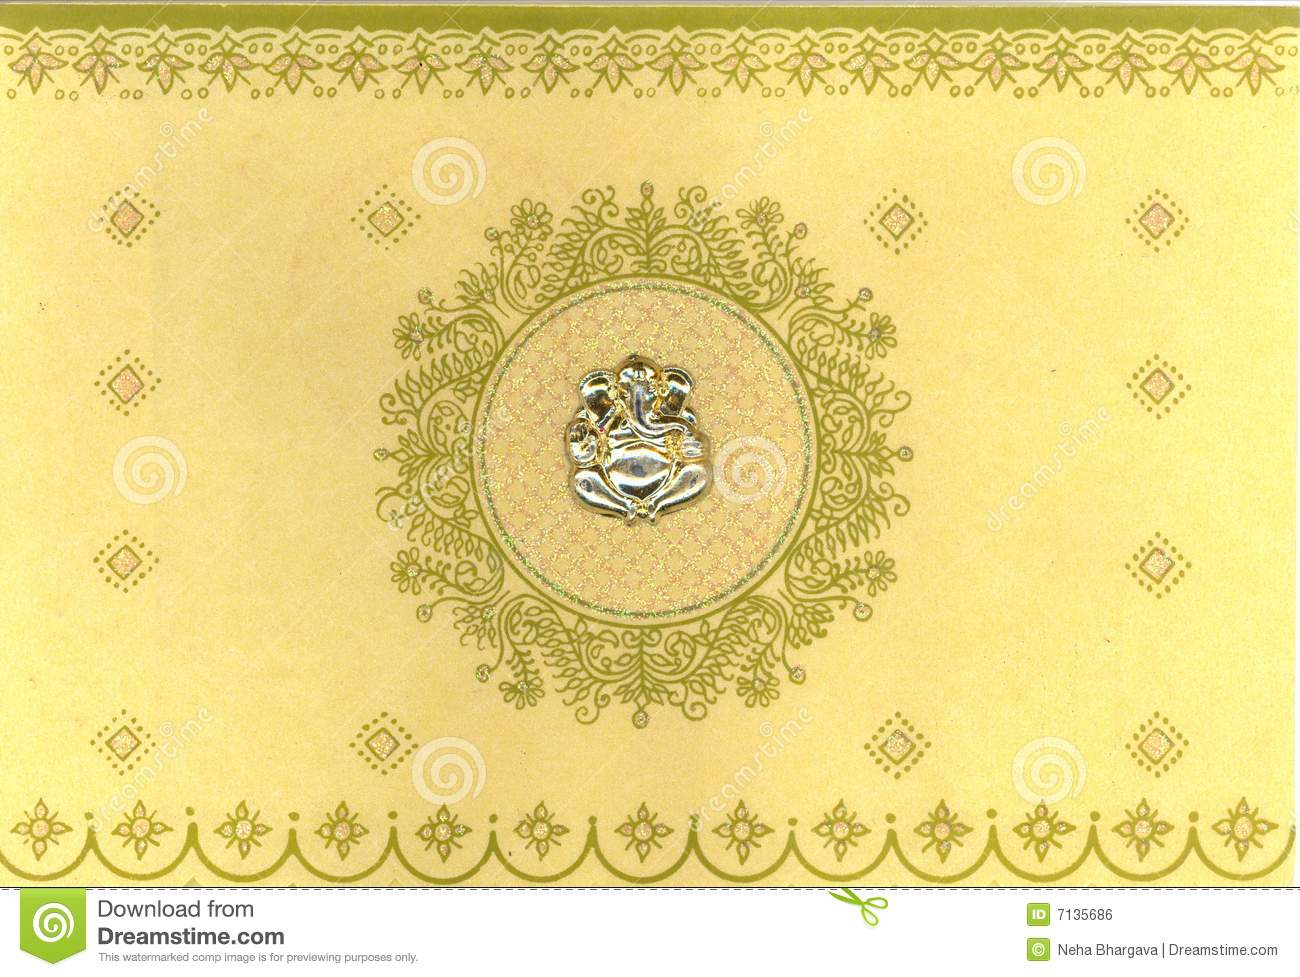 Indian Wedding Card Background Images Wedding Card Background Images Hd Wedding  Invitation Ideas. Indian Wedding ...